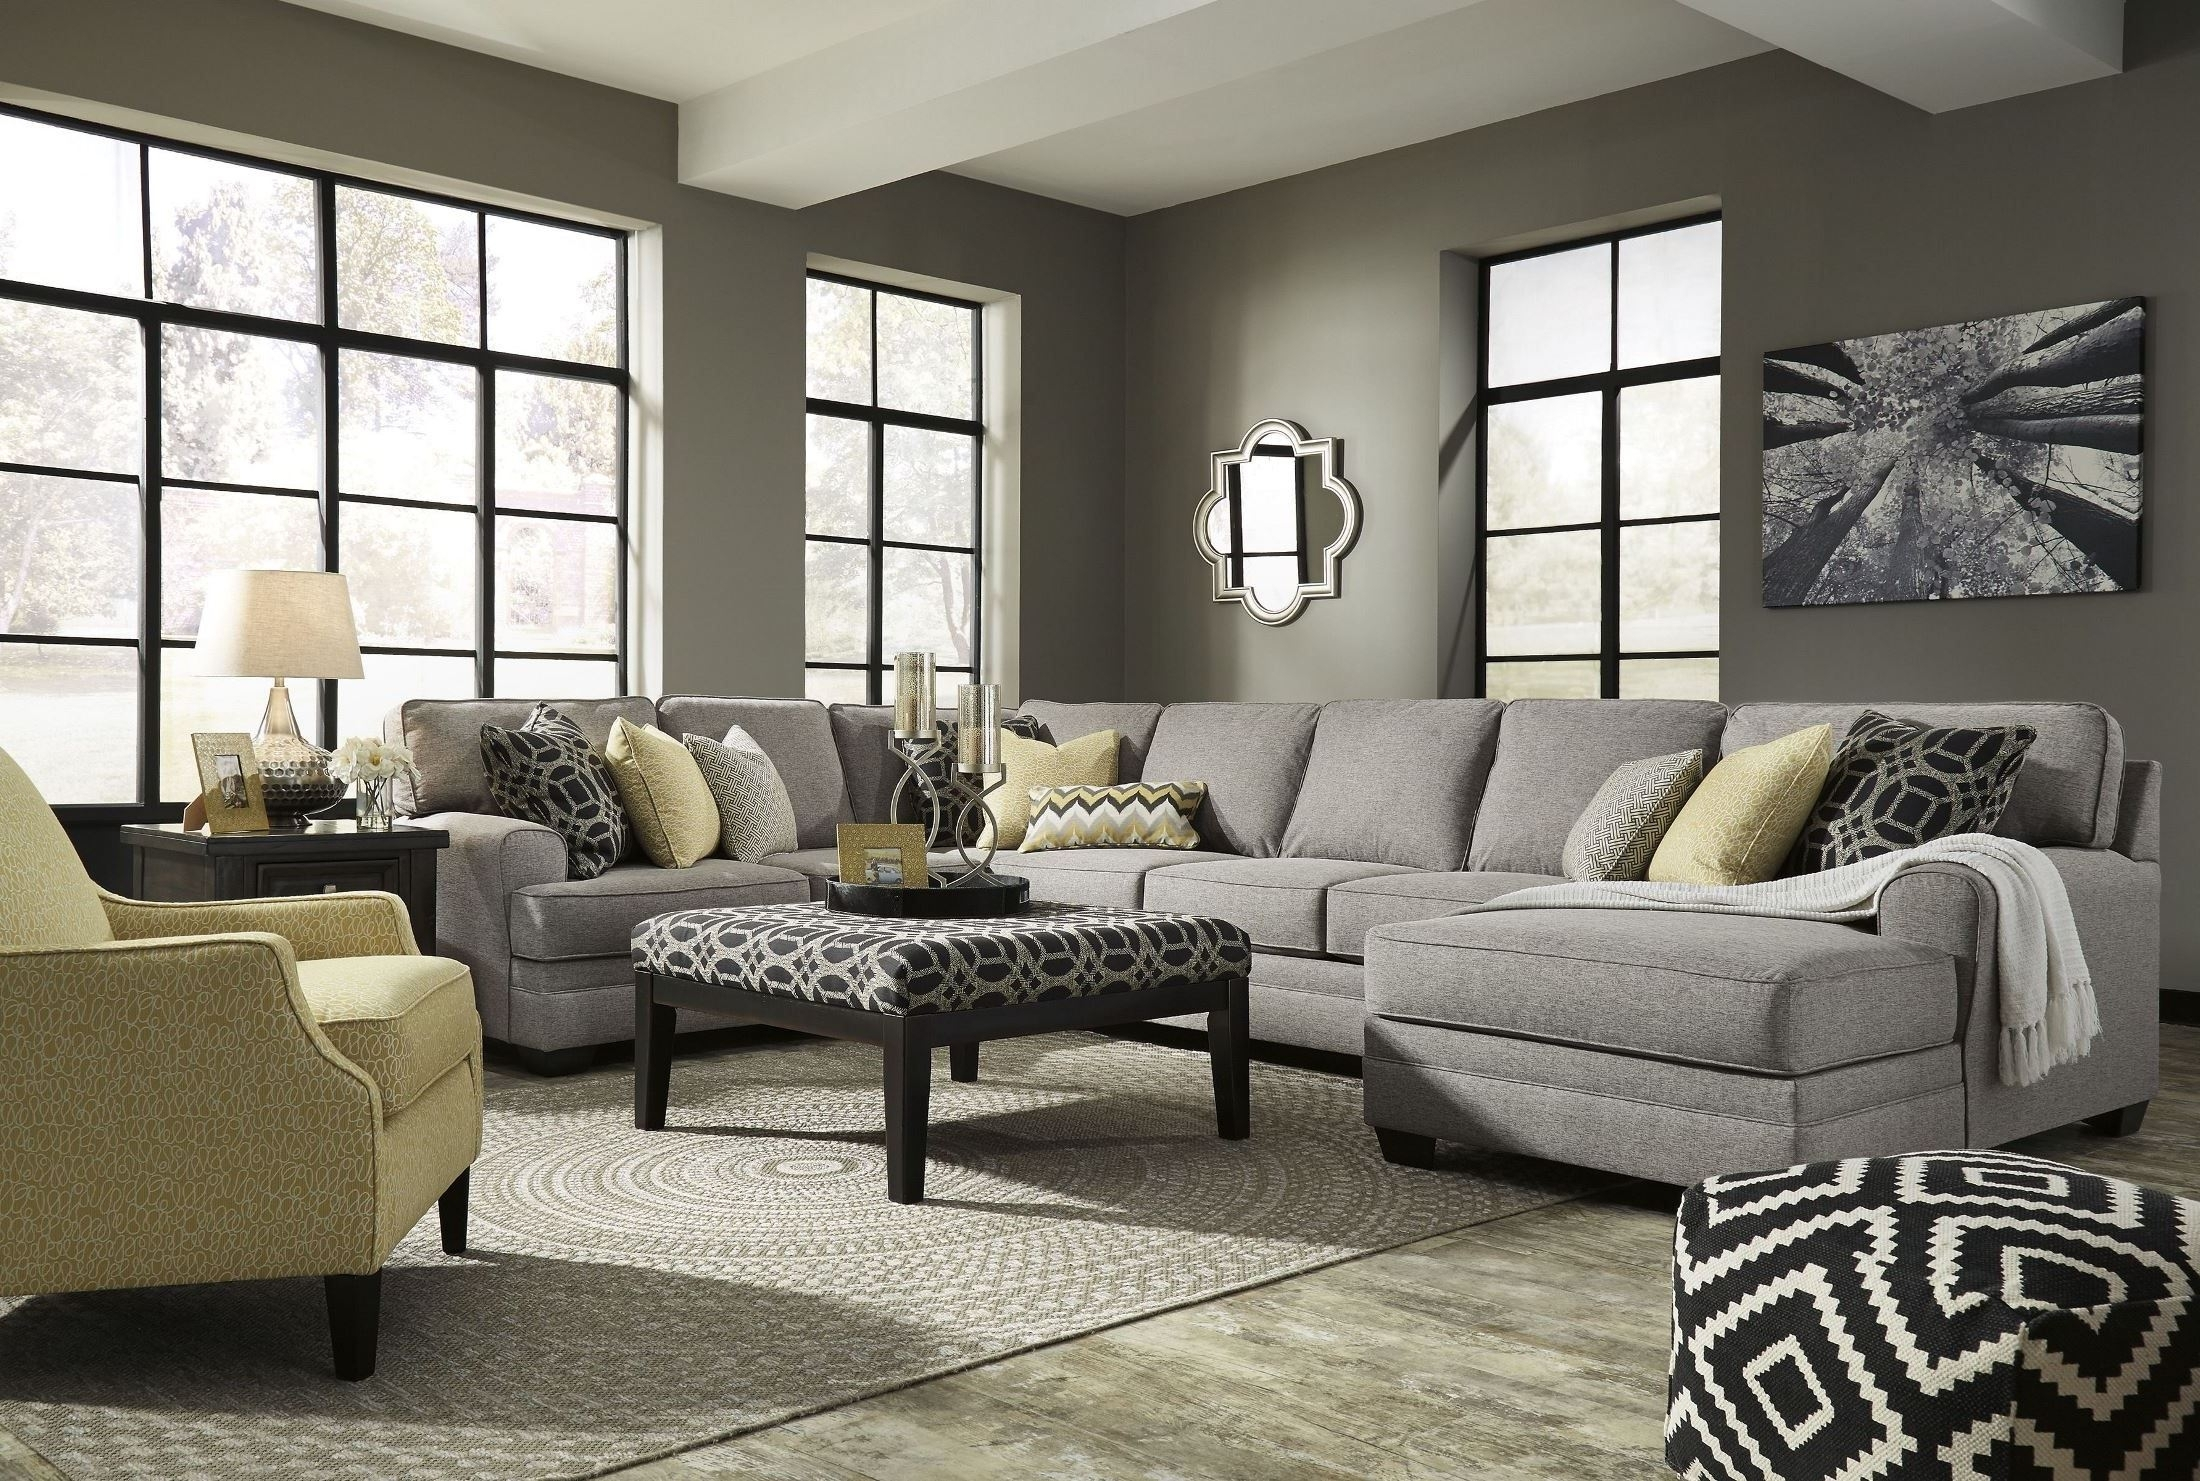 Large Chaise Sofas | Baci Living Room For Delano 2 Piece Sectionals With Raf Oversized Chaise (View 18 of 25)